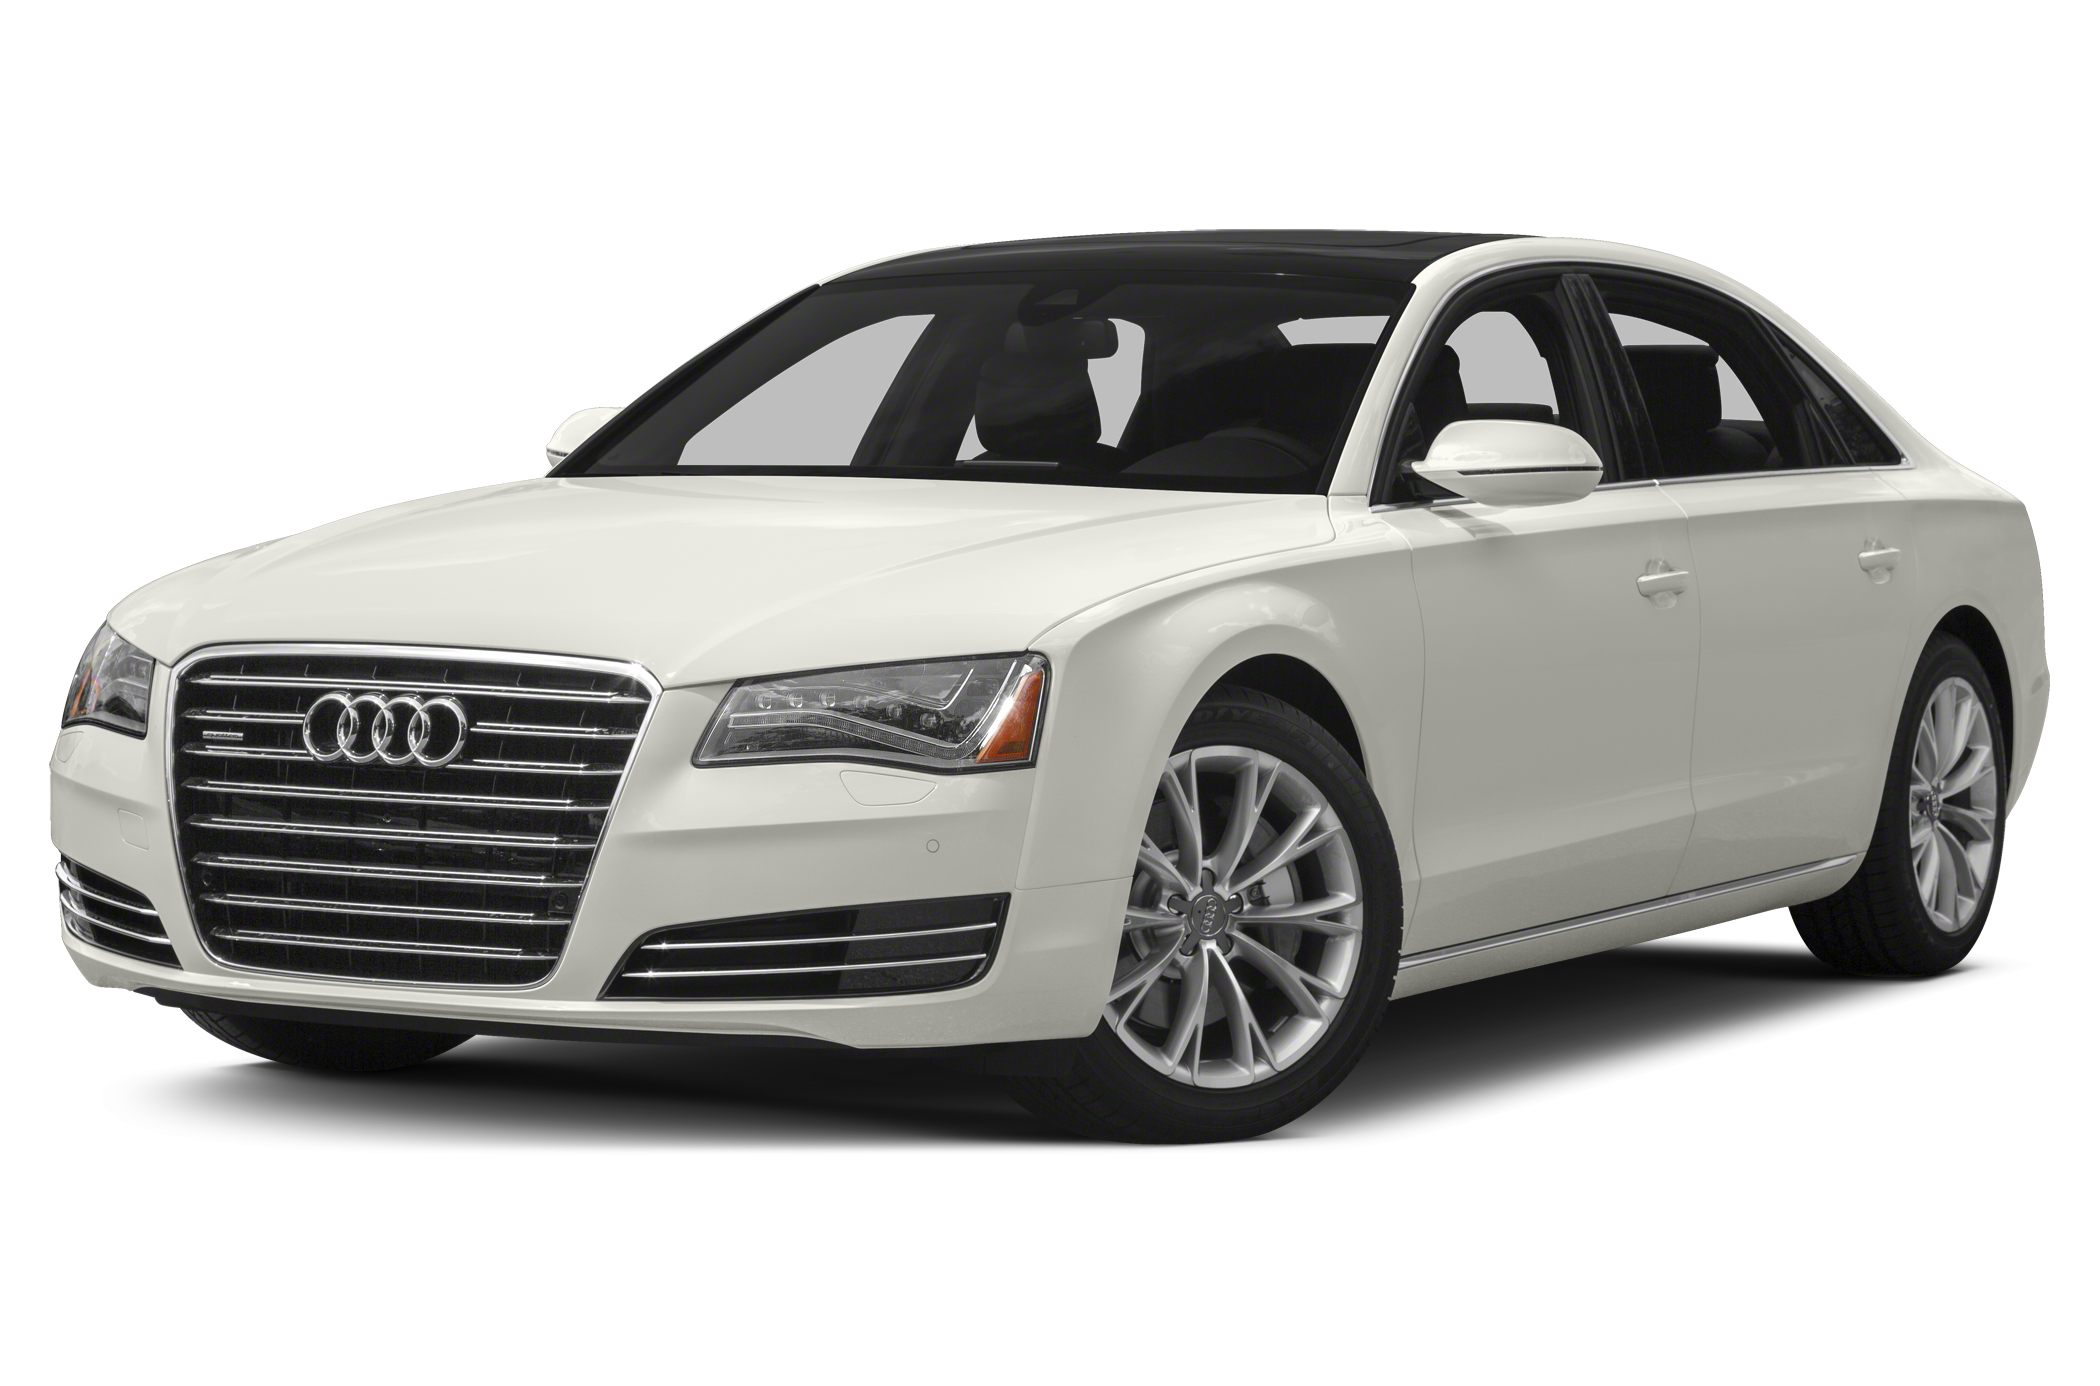 2013 Audi A8 L 3.0T Sedan for sale in Minneapolis for $48,999 with 45,755 miles.